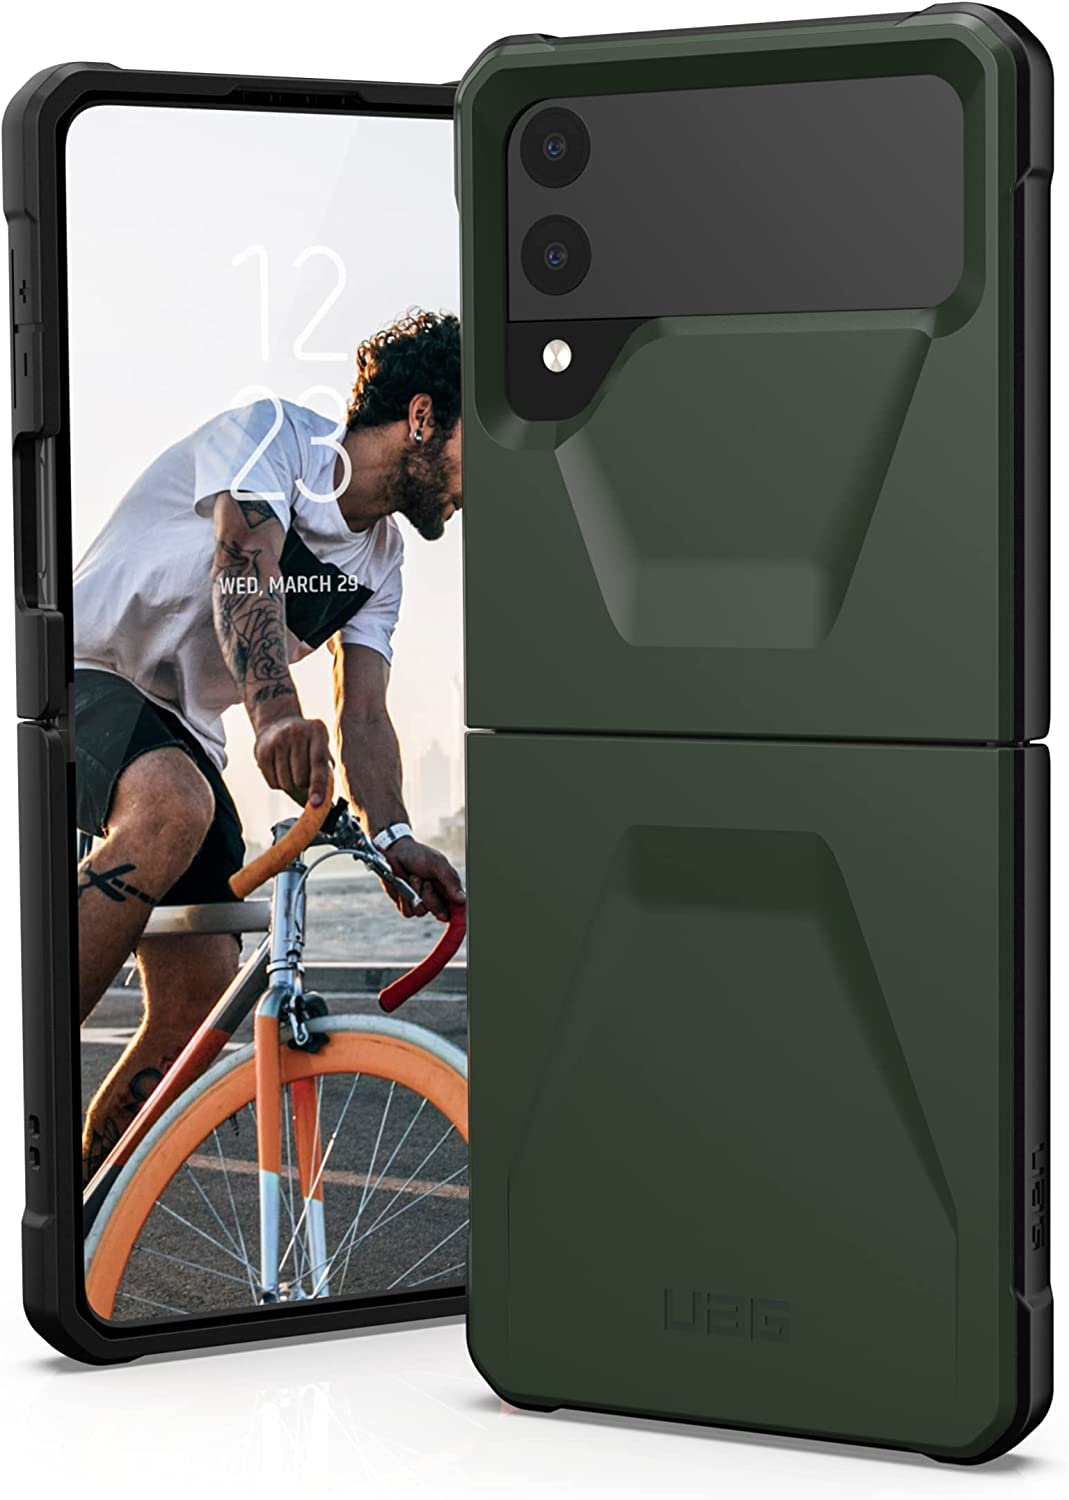 URBAN ARMOR GEAR UAG Designed for Samsung Galaxy Z Flip3 5G (2021) Case Civilian Sleek Ultra-Thin Shock-Absorbent Protective Cover, Olive